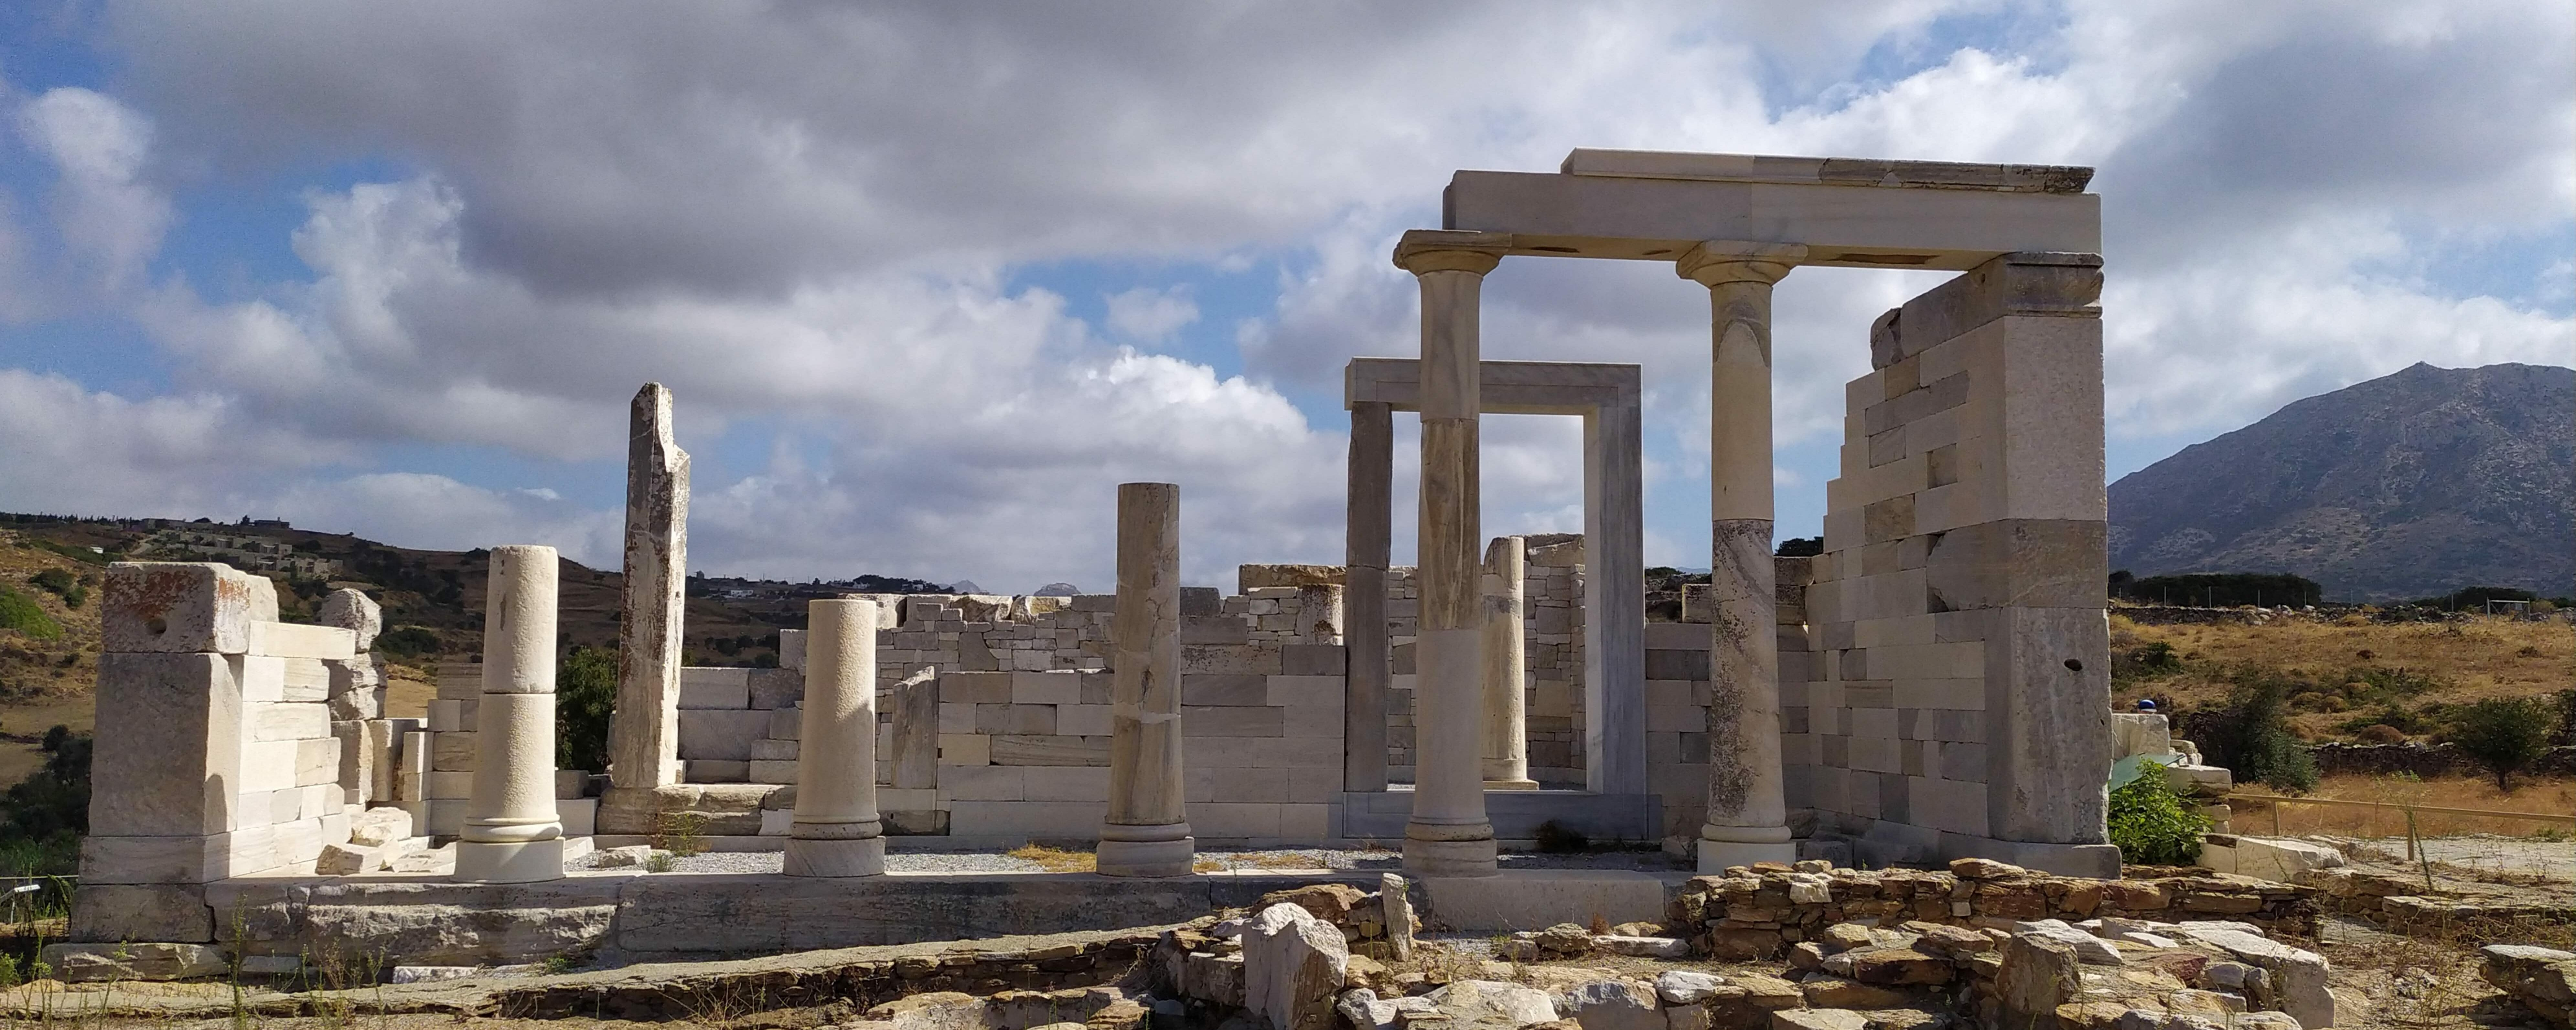 Cyclades :Naxos – The rare and impressive Archeological Temple of the Goddess Demeter